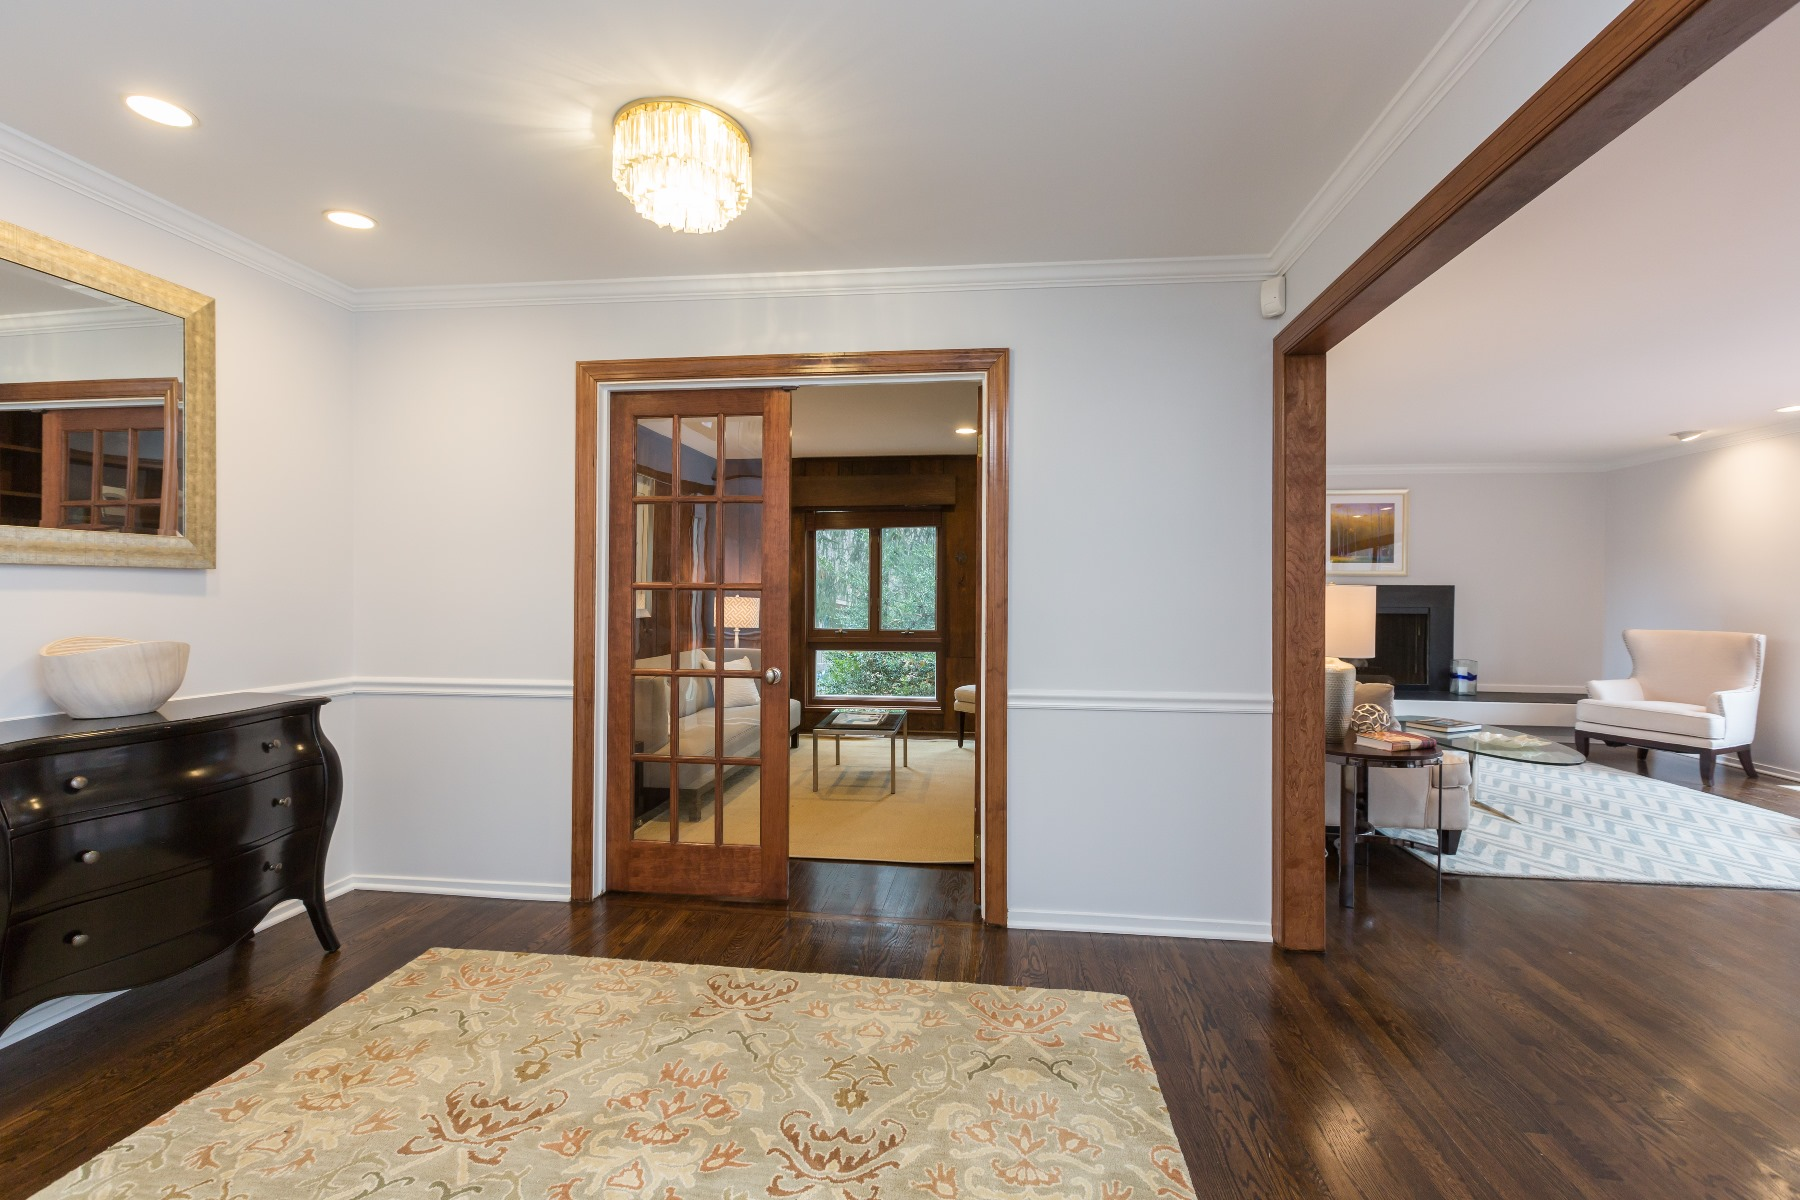 Additional photo for property listing at 8804 Quiet Stream, Potomac 8804 Quiet Stream Ct Potomac, Maryland 20854 United States